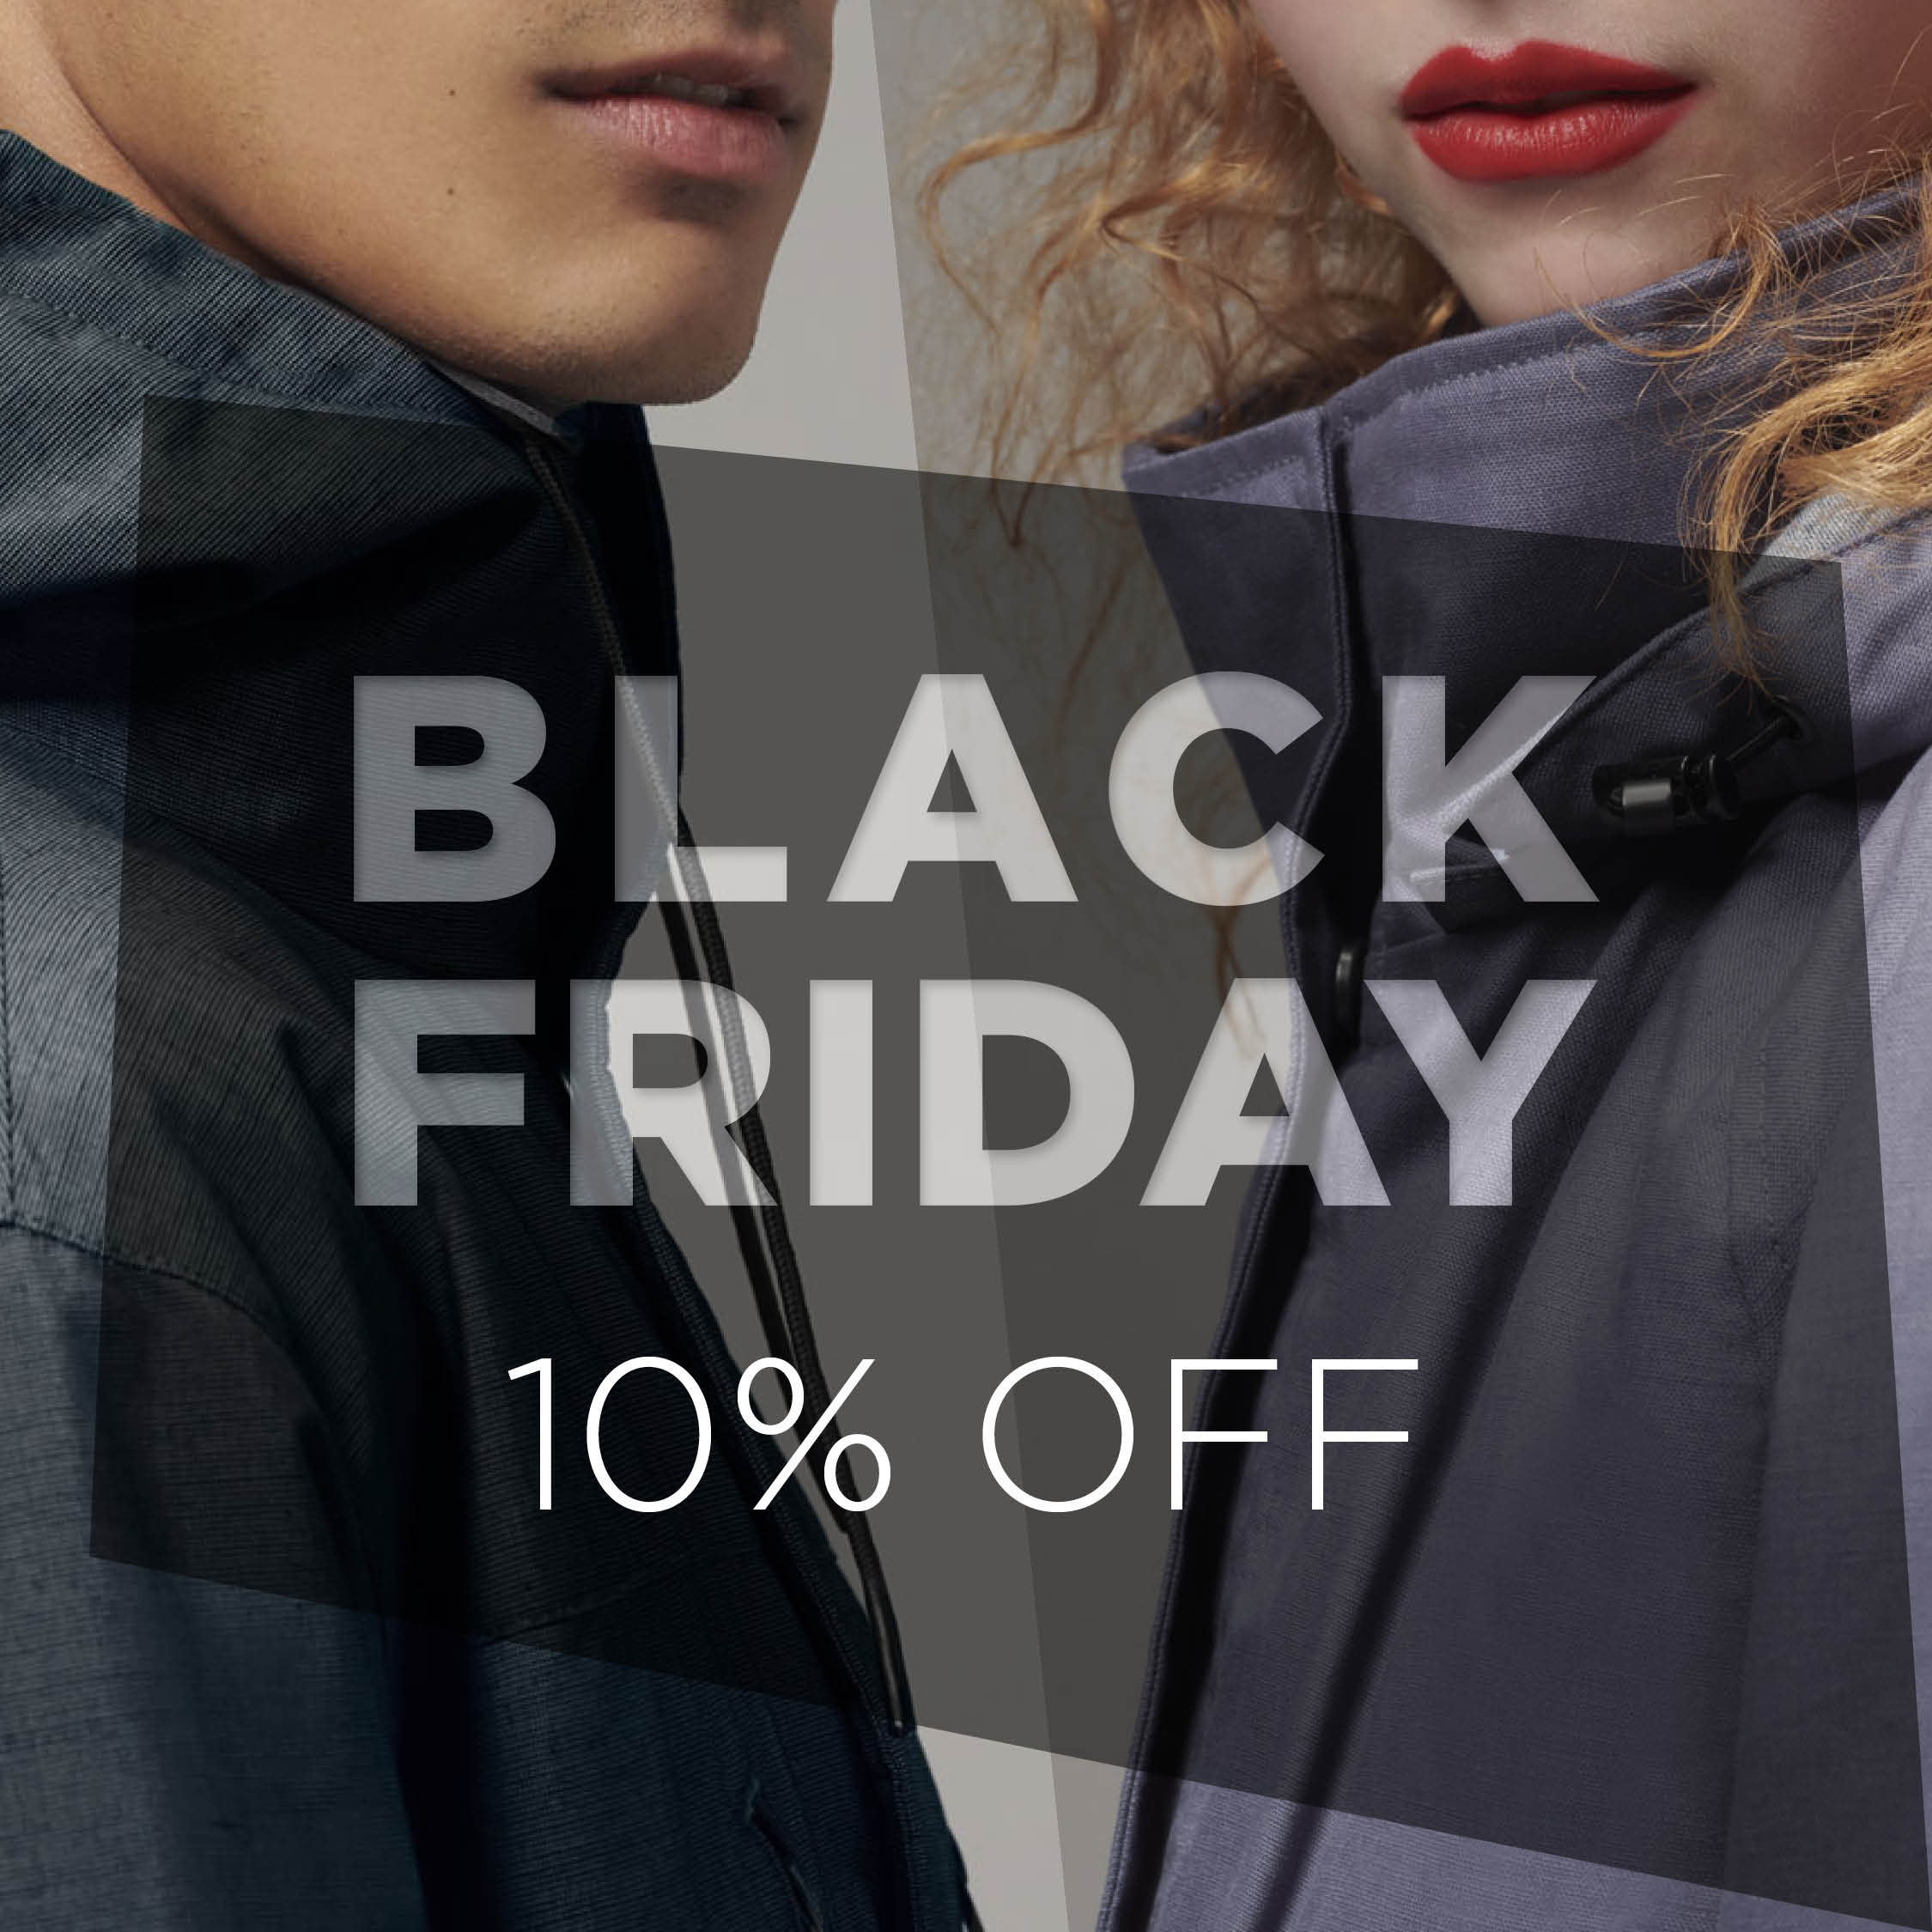 Black Friday - 10% Off Sitewide